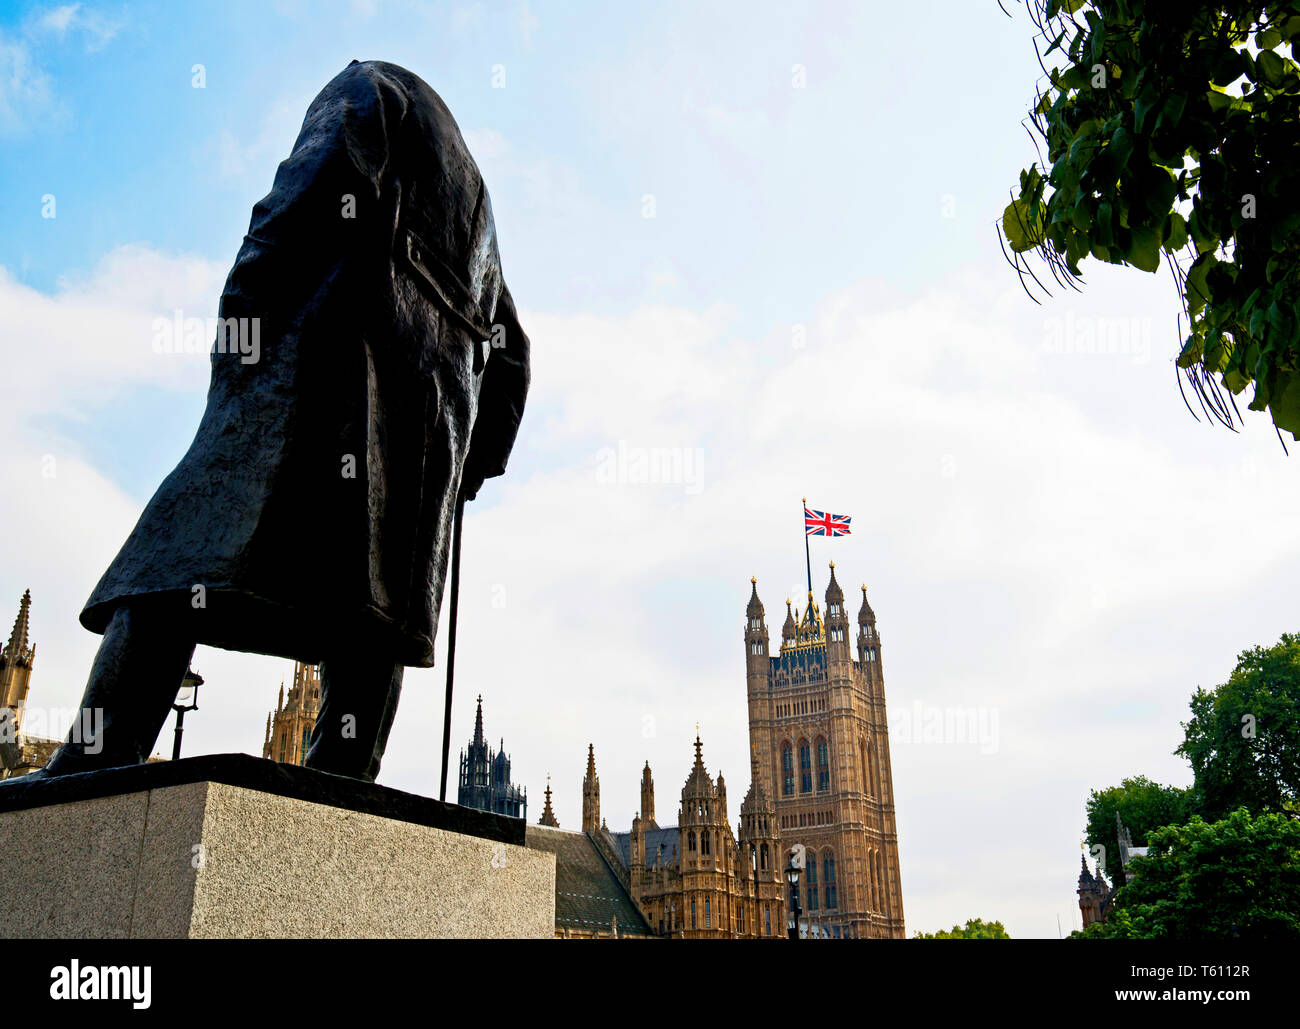 Monument of Winston Churchill opposite the parliament, Westminster, London, England - Stock Image